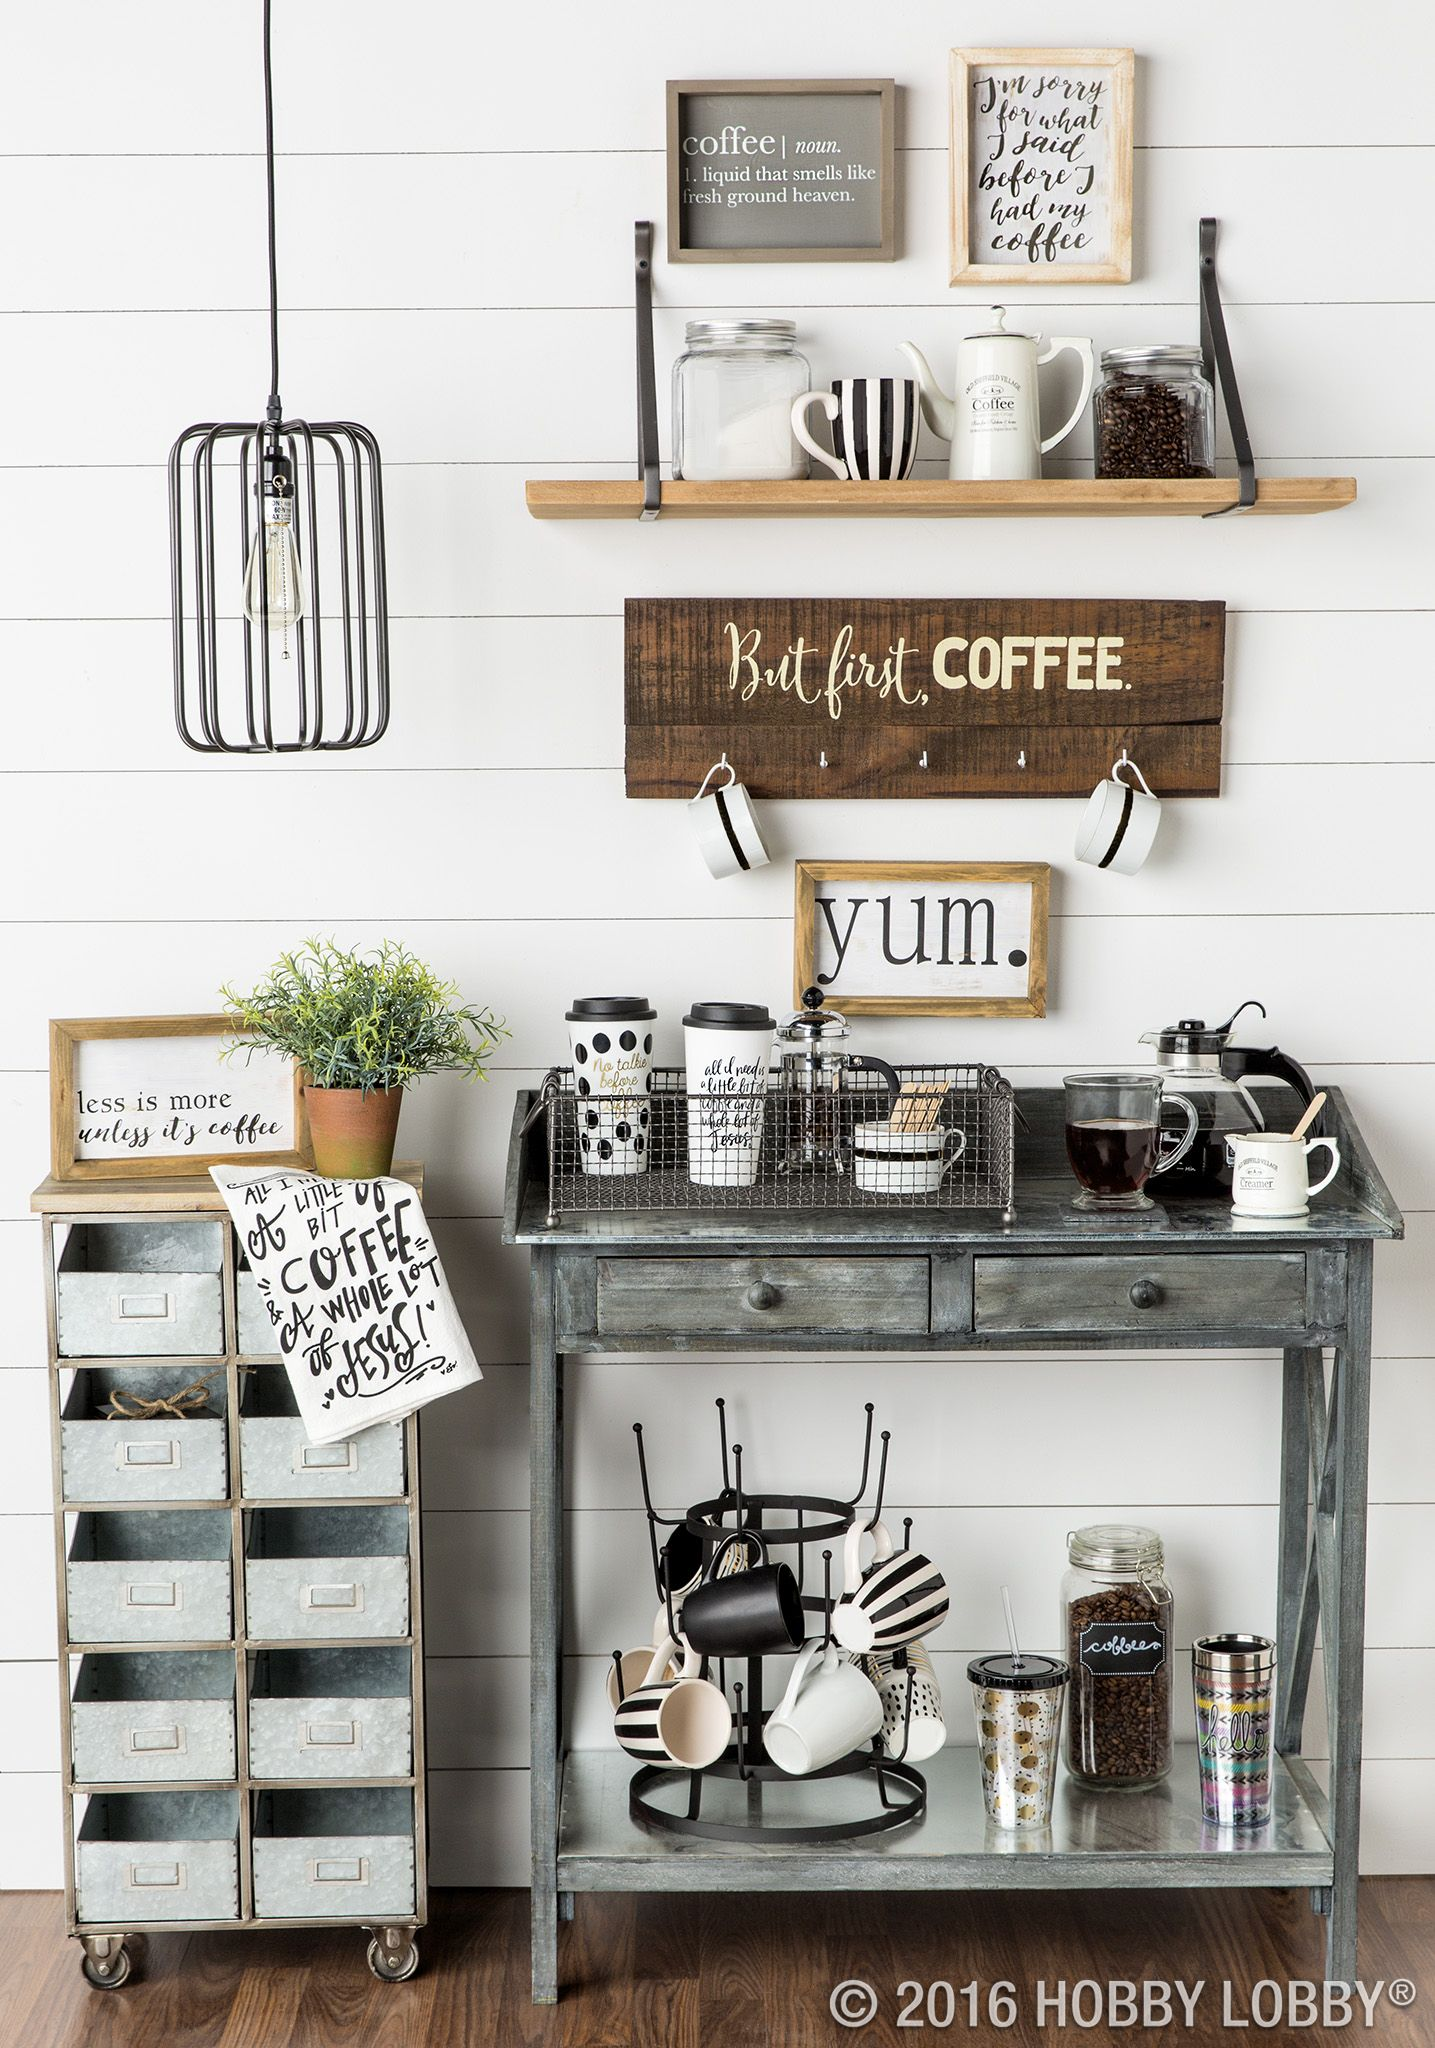 Need a caffeine boost? Heres a one-stop-coffee-shop you can enjoy in your jammies. Coffee Bar Idea.